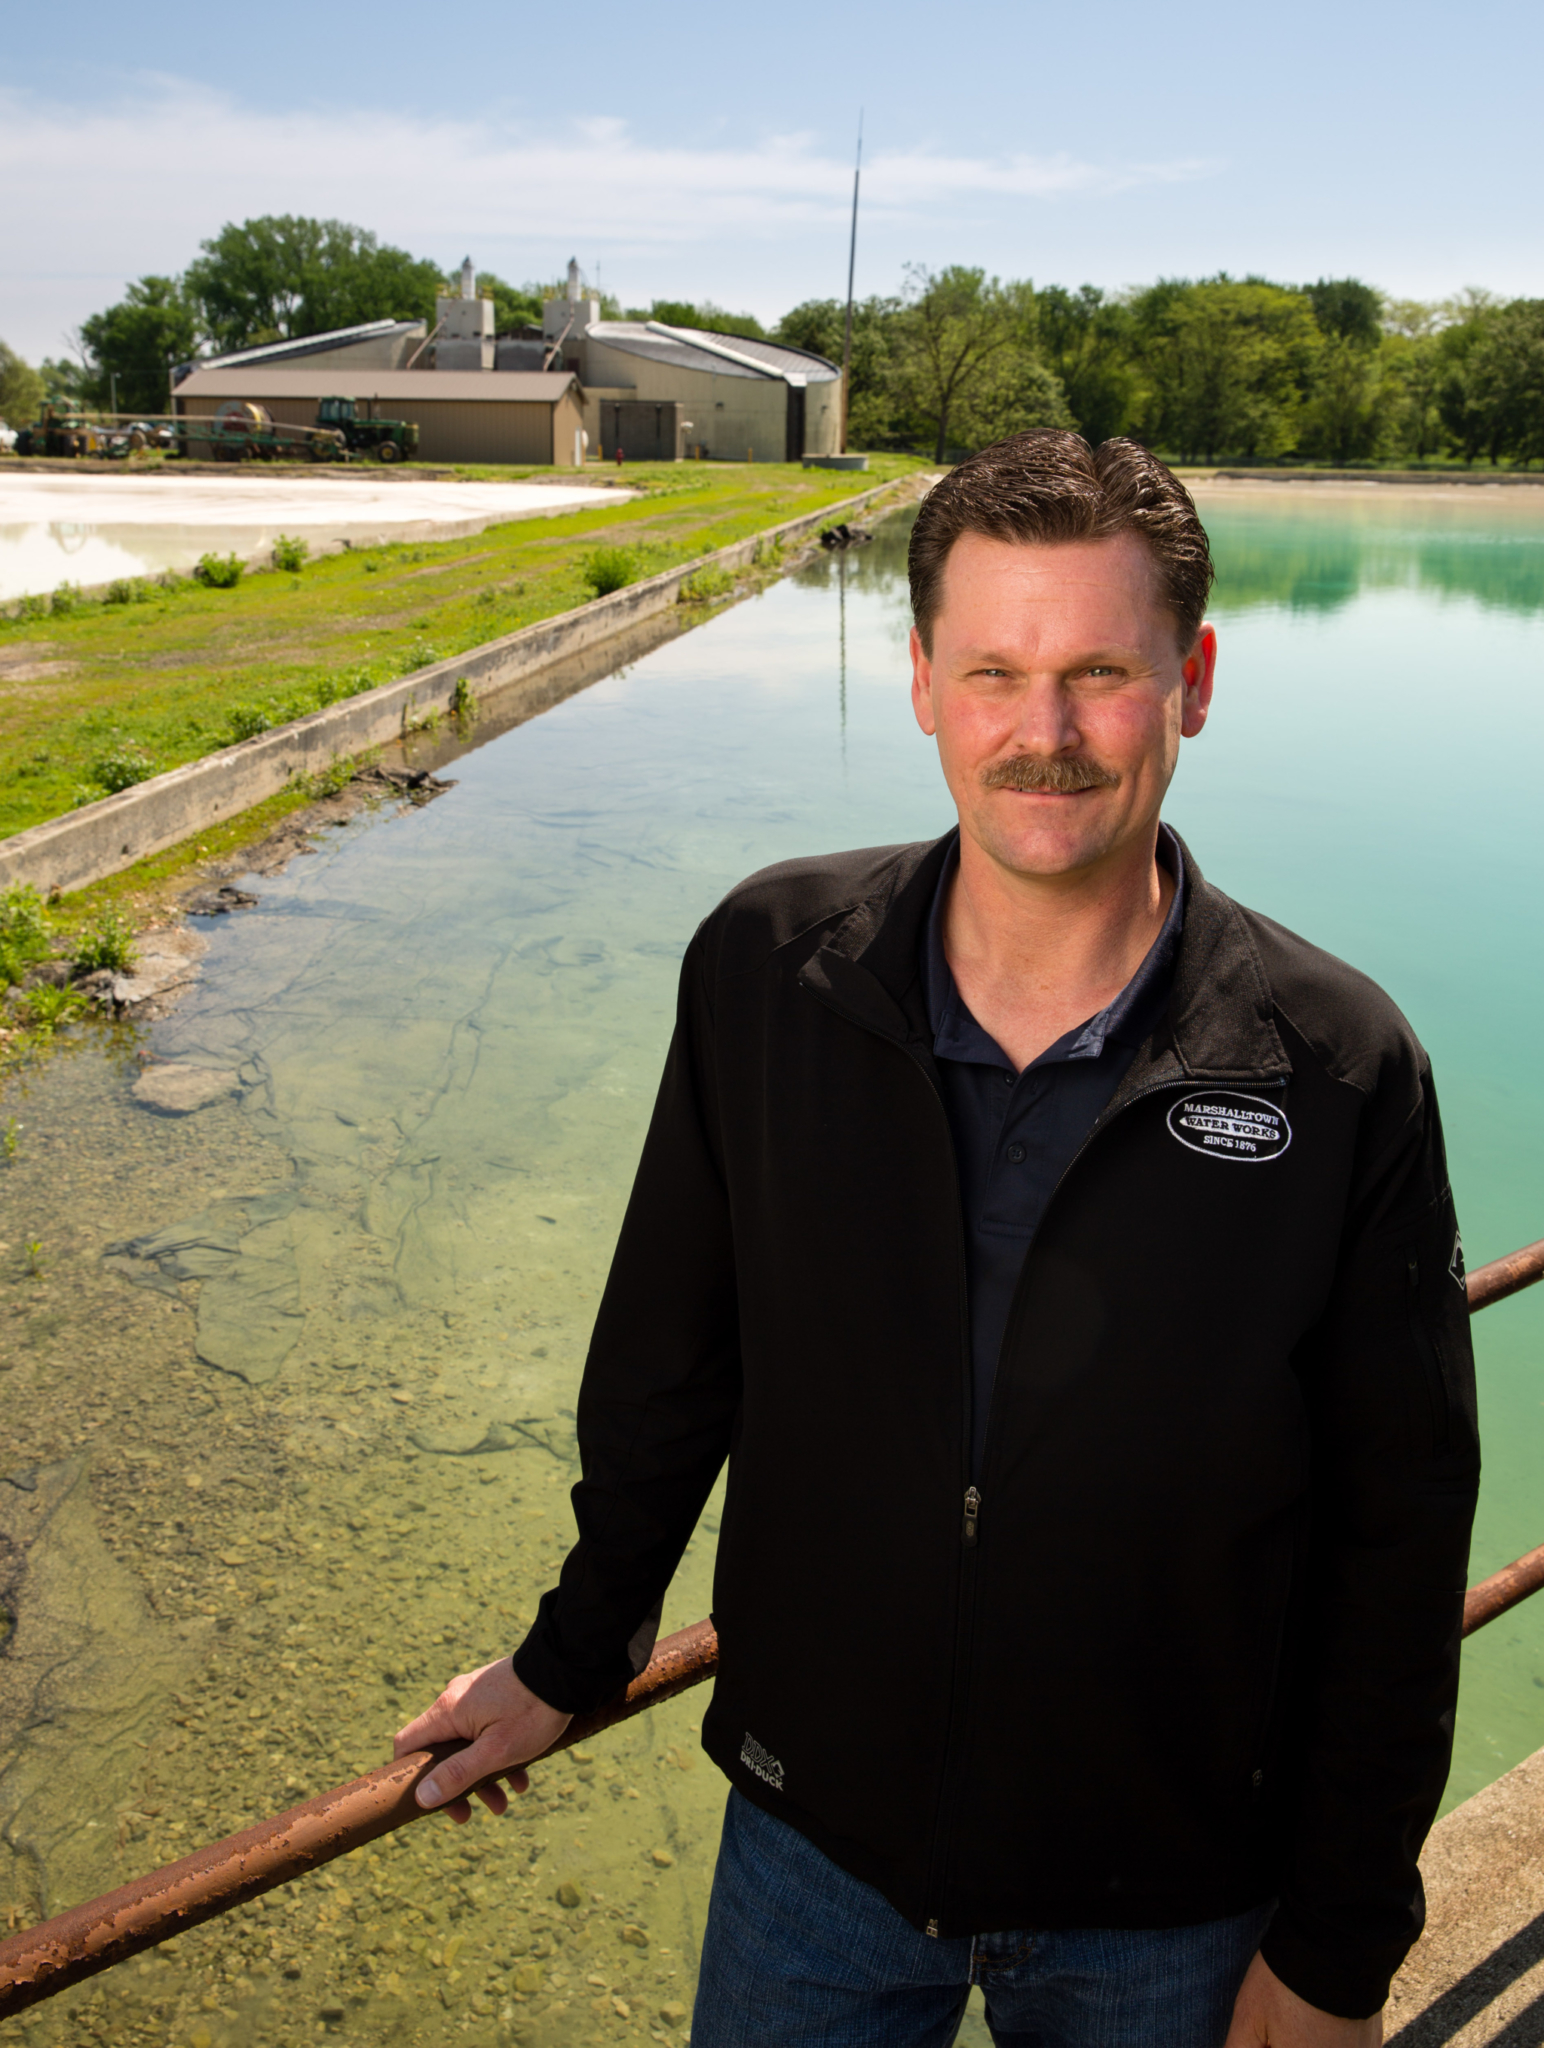 Marshalltown Water Works CEO and General Manager Steve Sincox at the water treatment plant in Marshalltown, Iowa. (Photo By Scott Morgan)